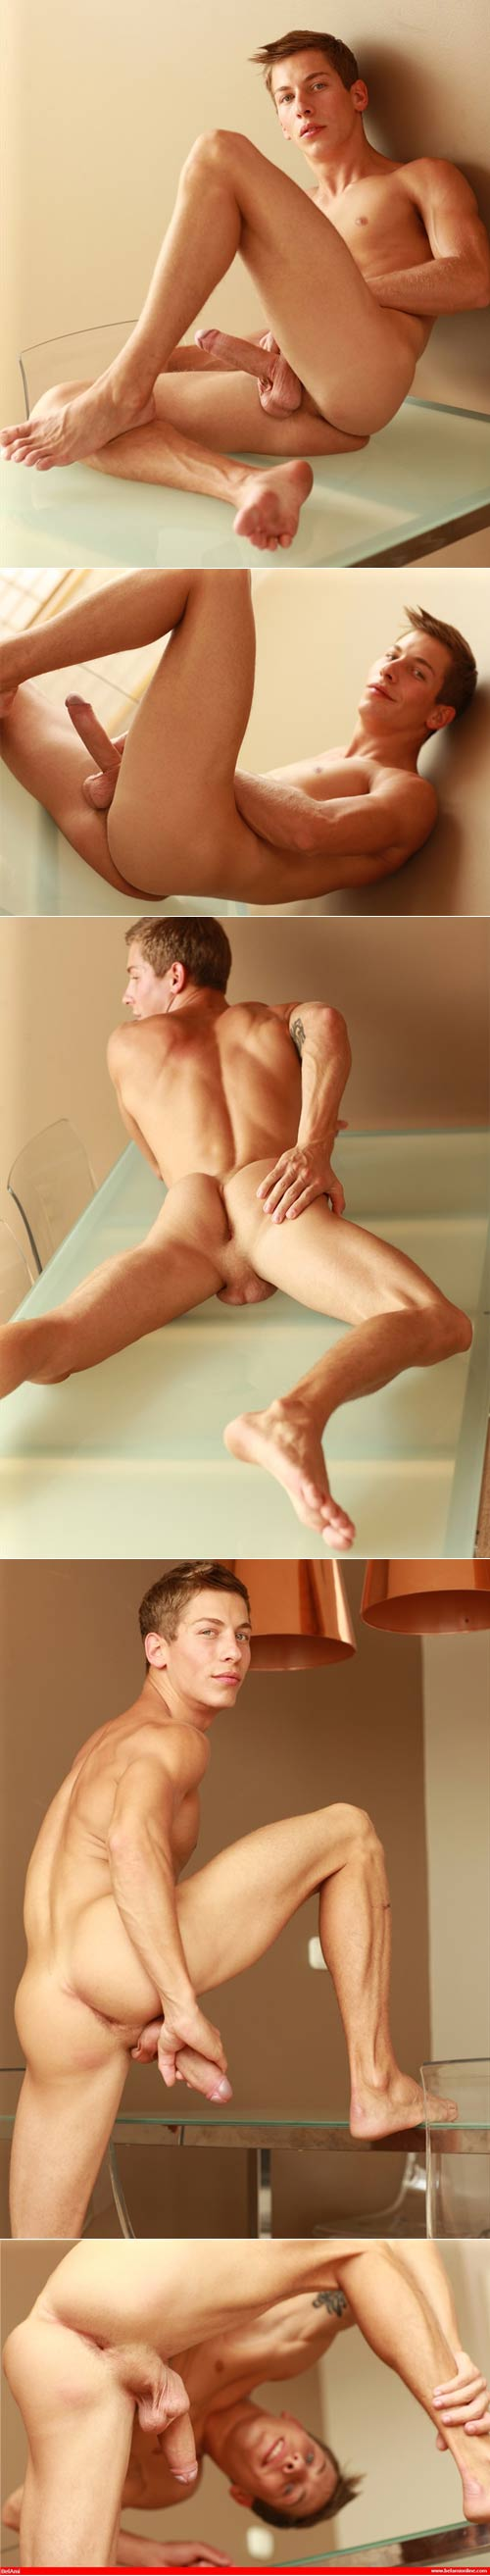 Jim Kerouac at BelamiOnline